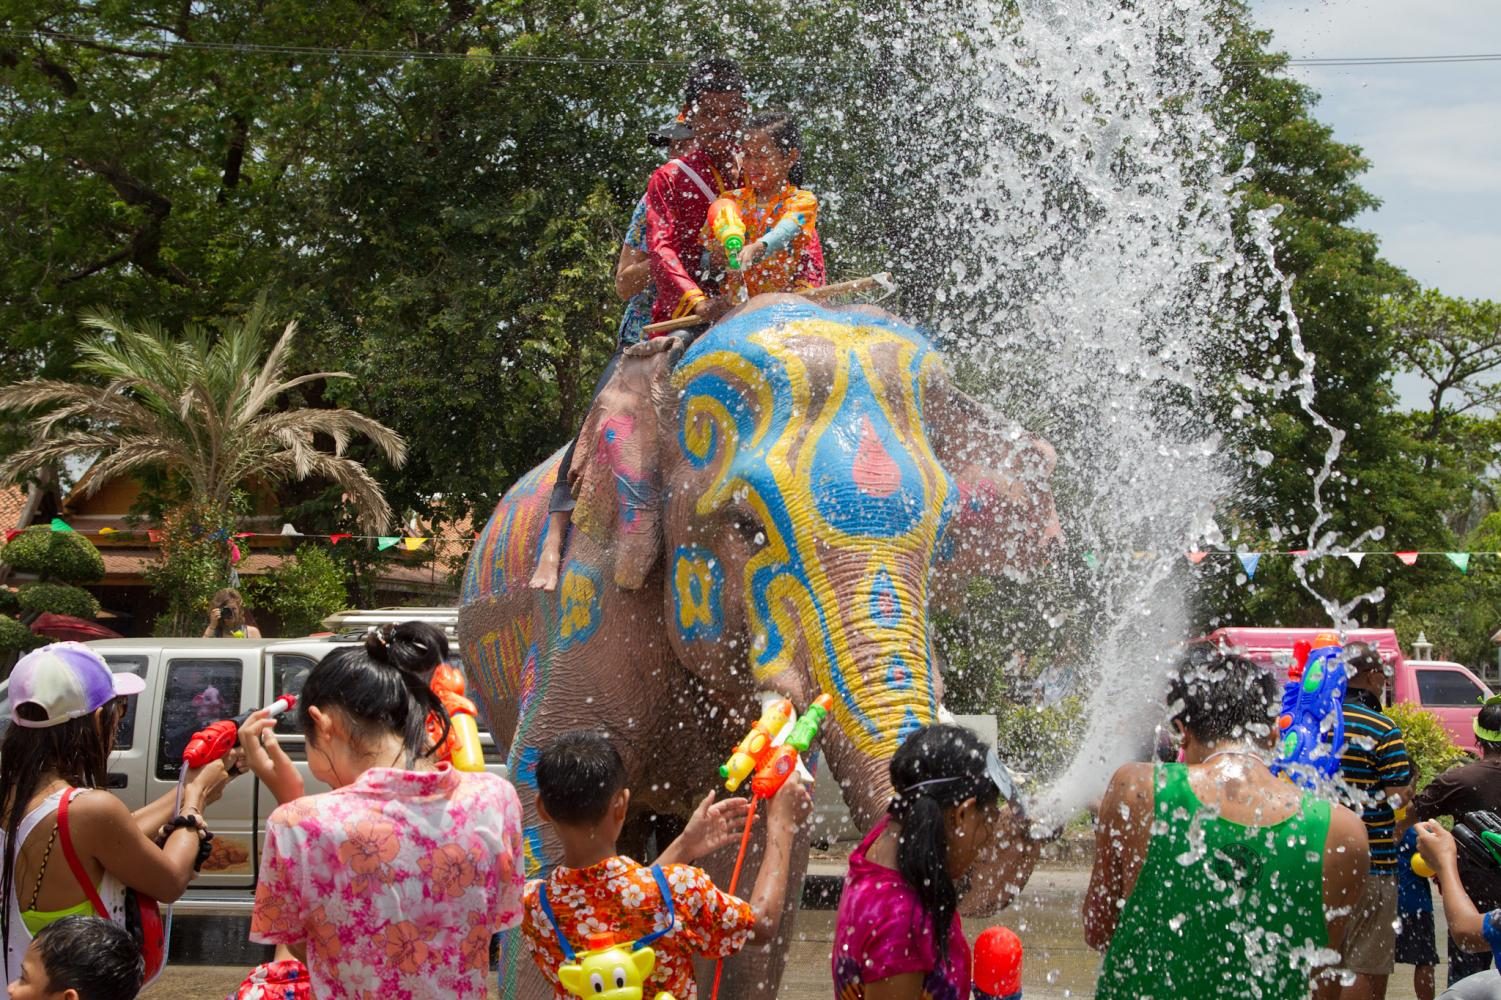 Celebrations of Songkran place a large focus on water, commemorating Buddhist practices.